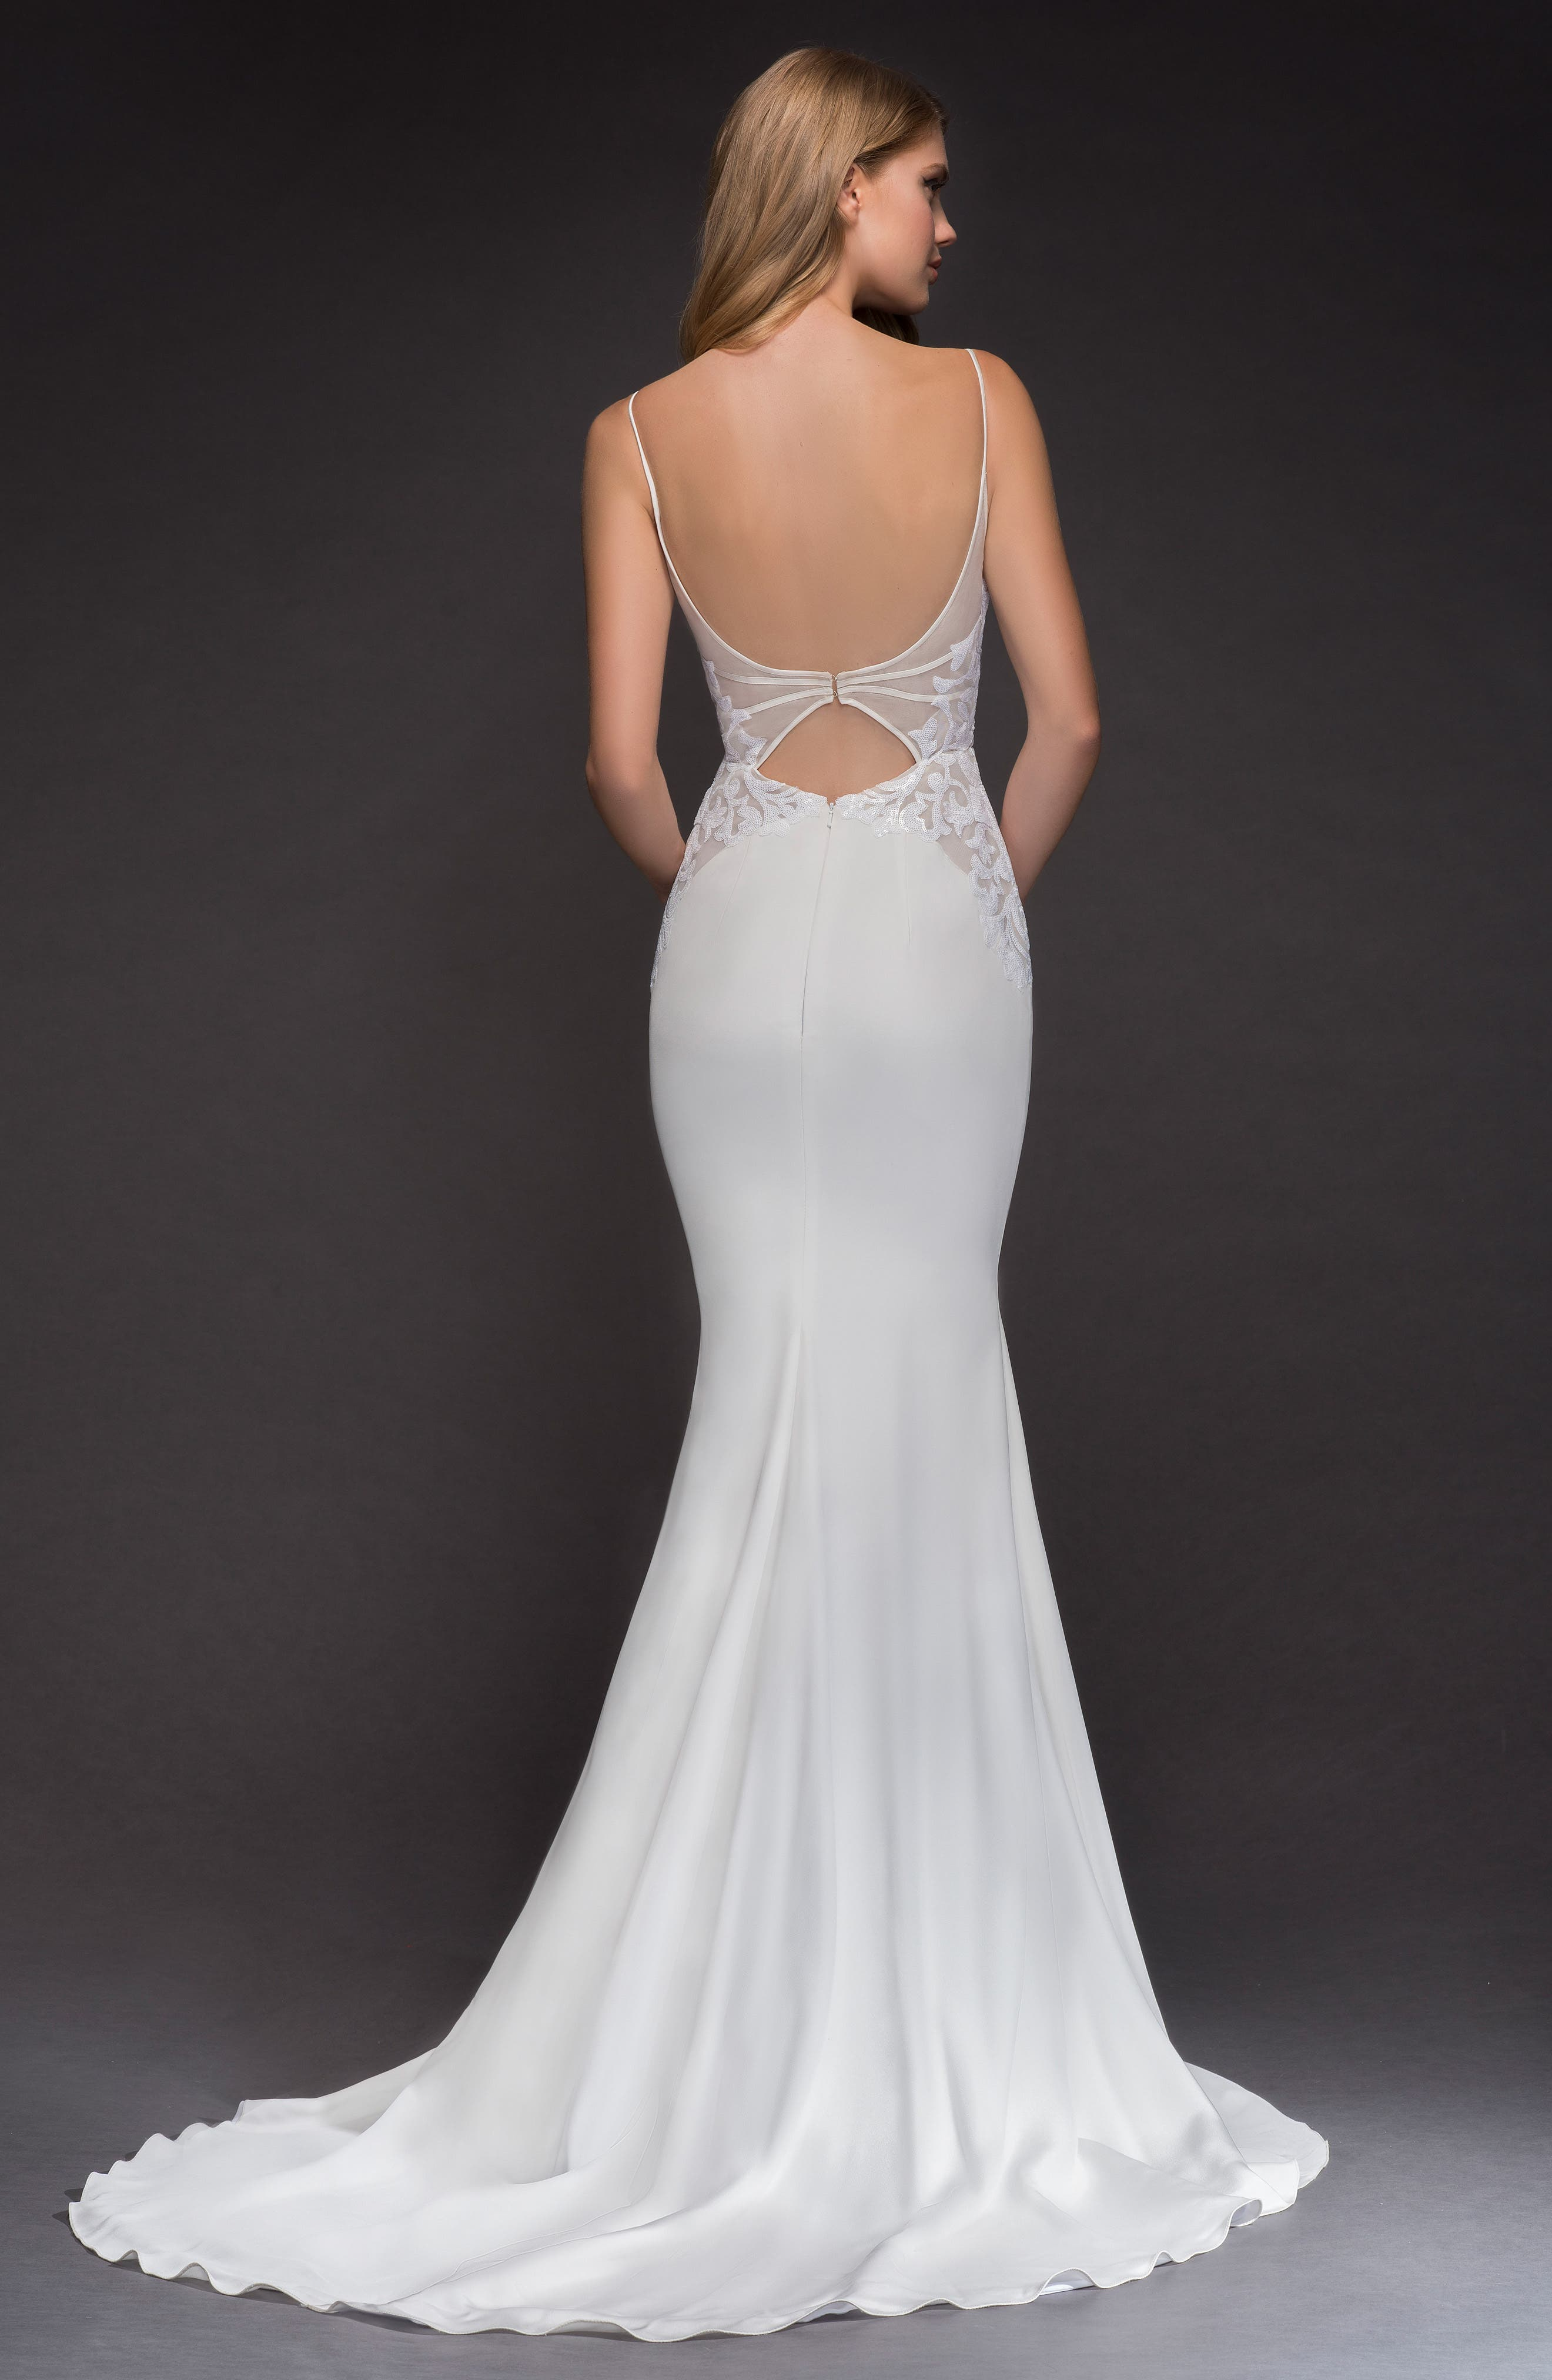 Xenia Beaded Crepe Mermaid Gown,                             Alternate thumbnail 2, color,                             Ivory